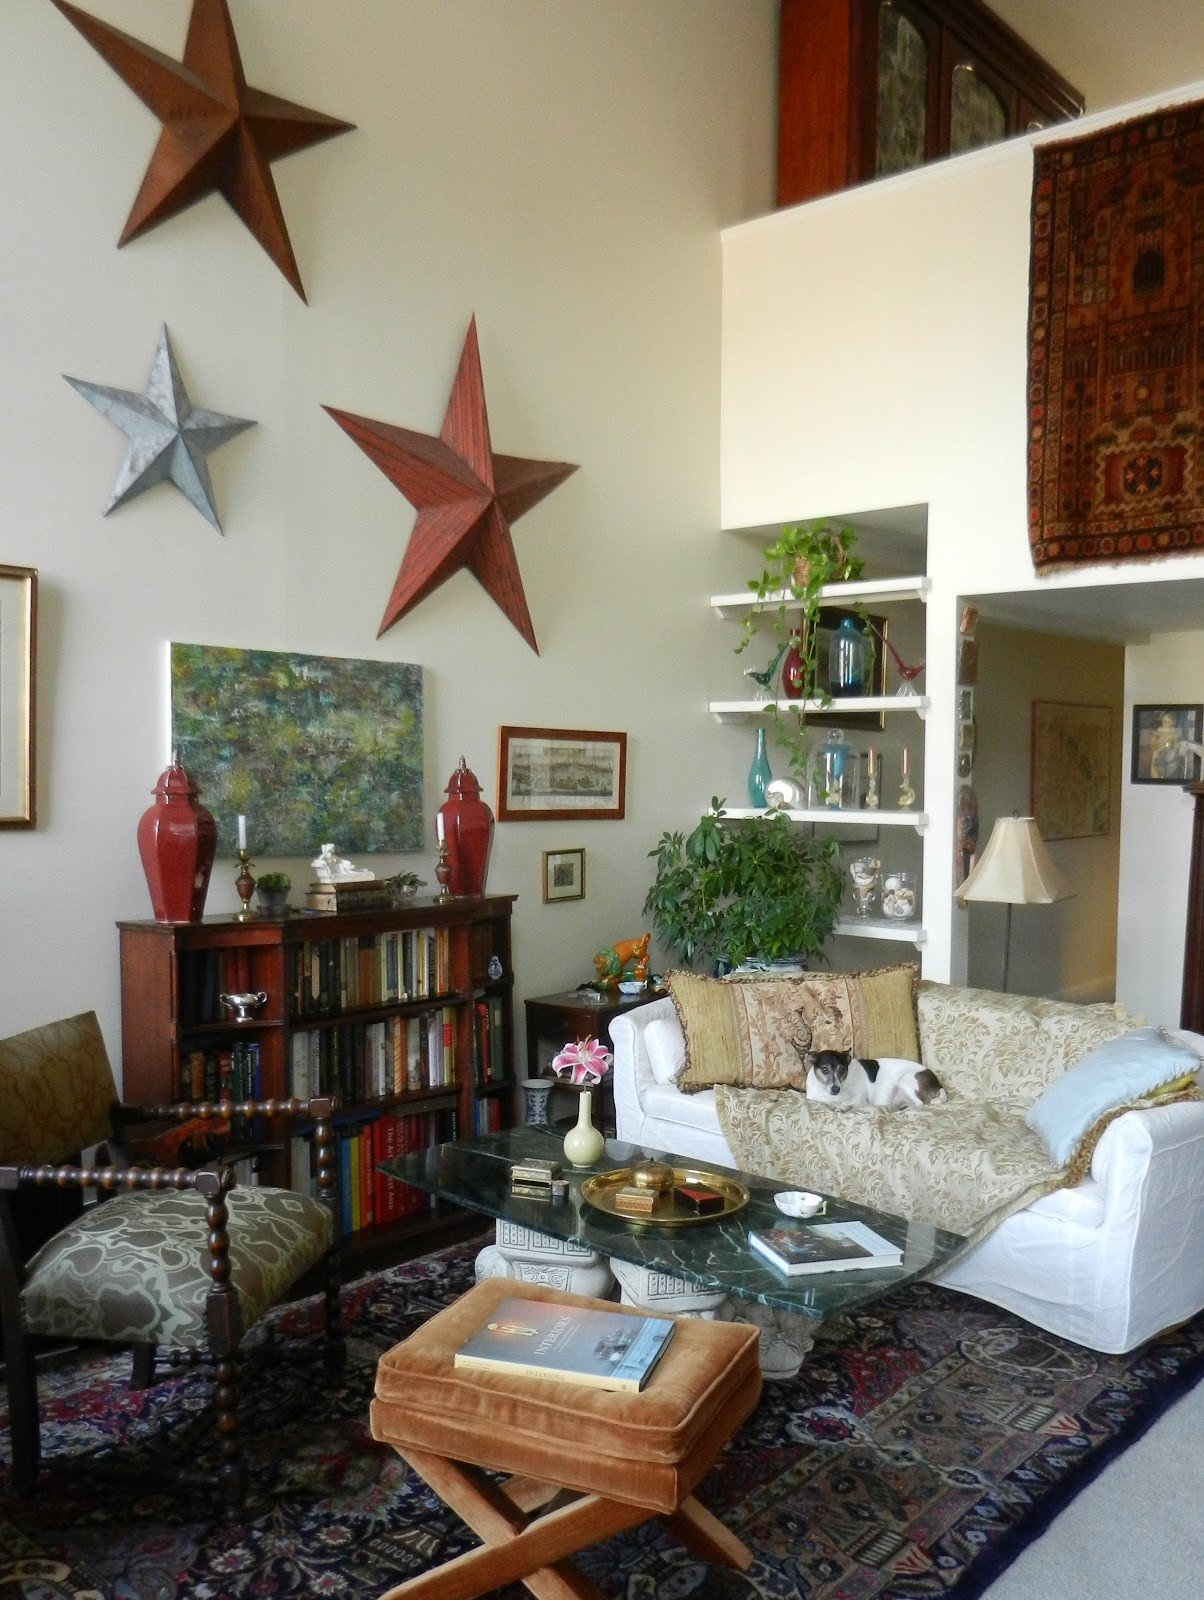 Traditional Eclectic Living Room Knickerbocker Style & Design Abstract Modern Art In A